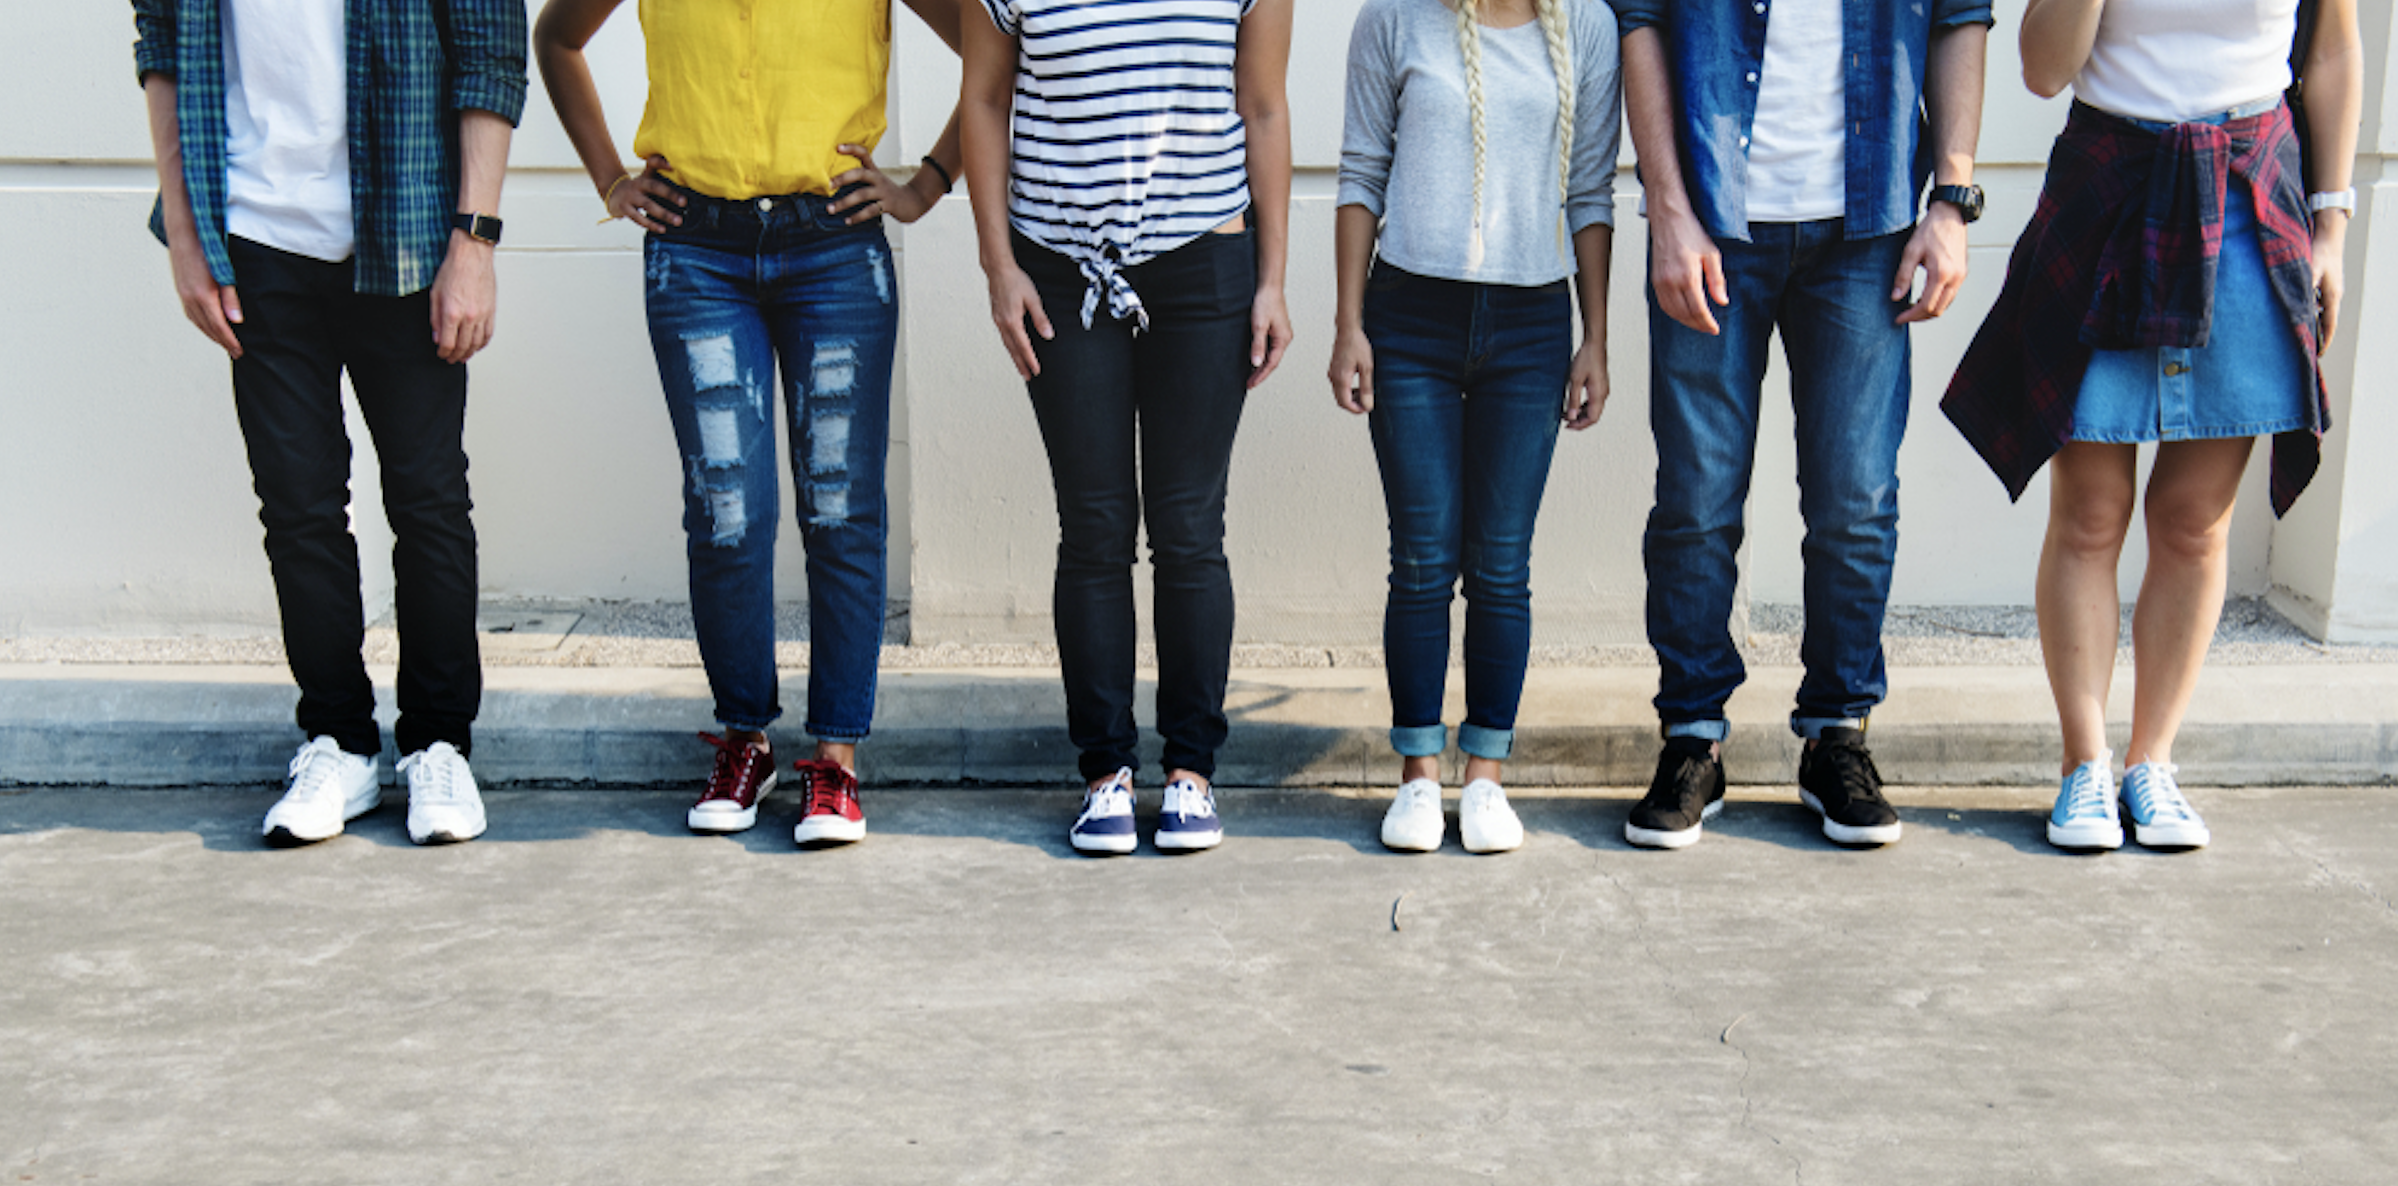 New 2019 Report: What You Need to Know About Marketing to Gen Z (Even If They're Not Your Target)